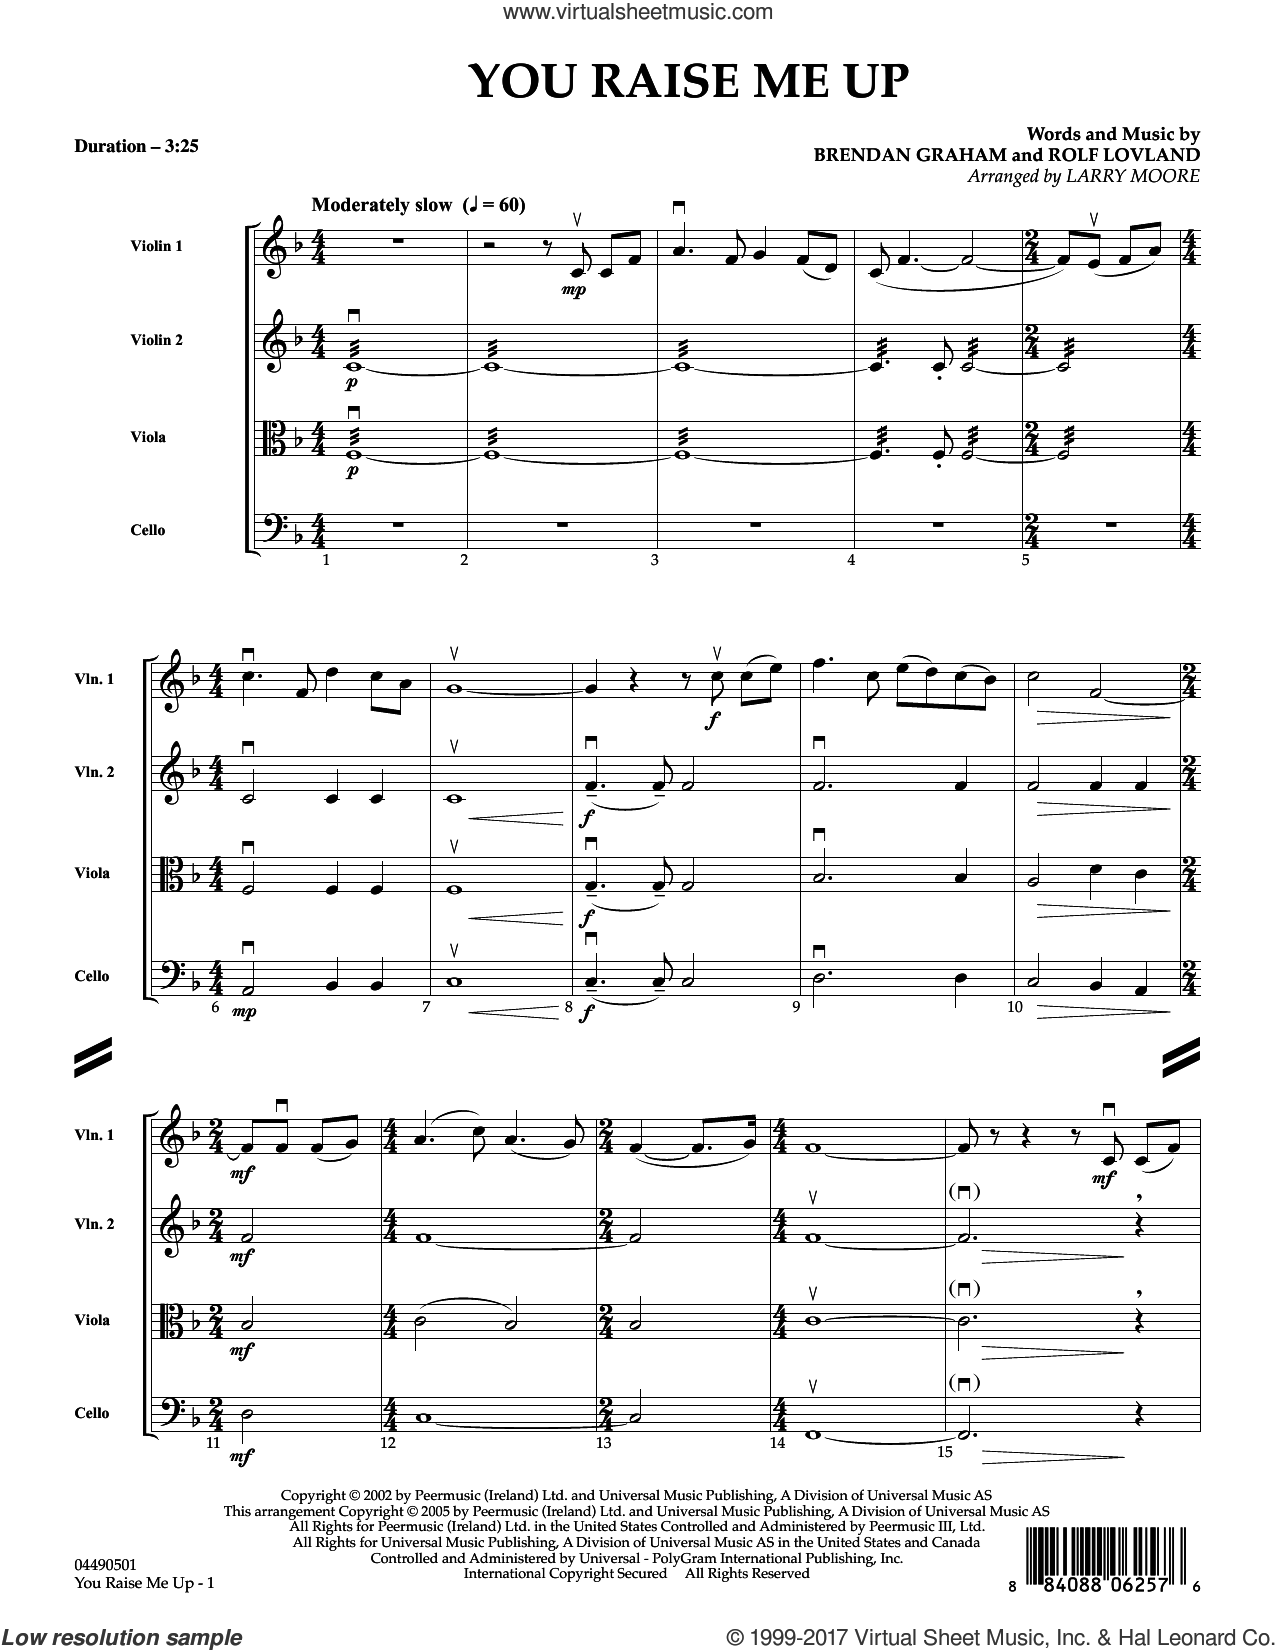 You raise me up sheet music secret garden free sheet music pdf.